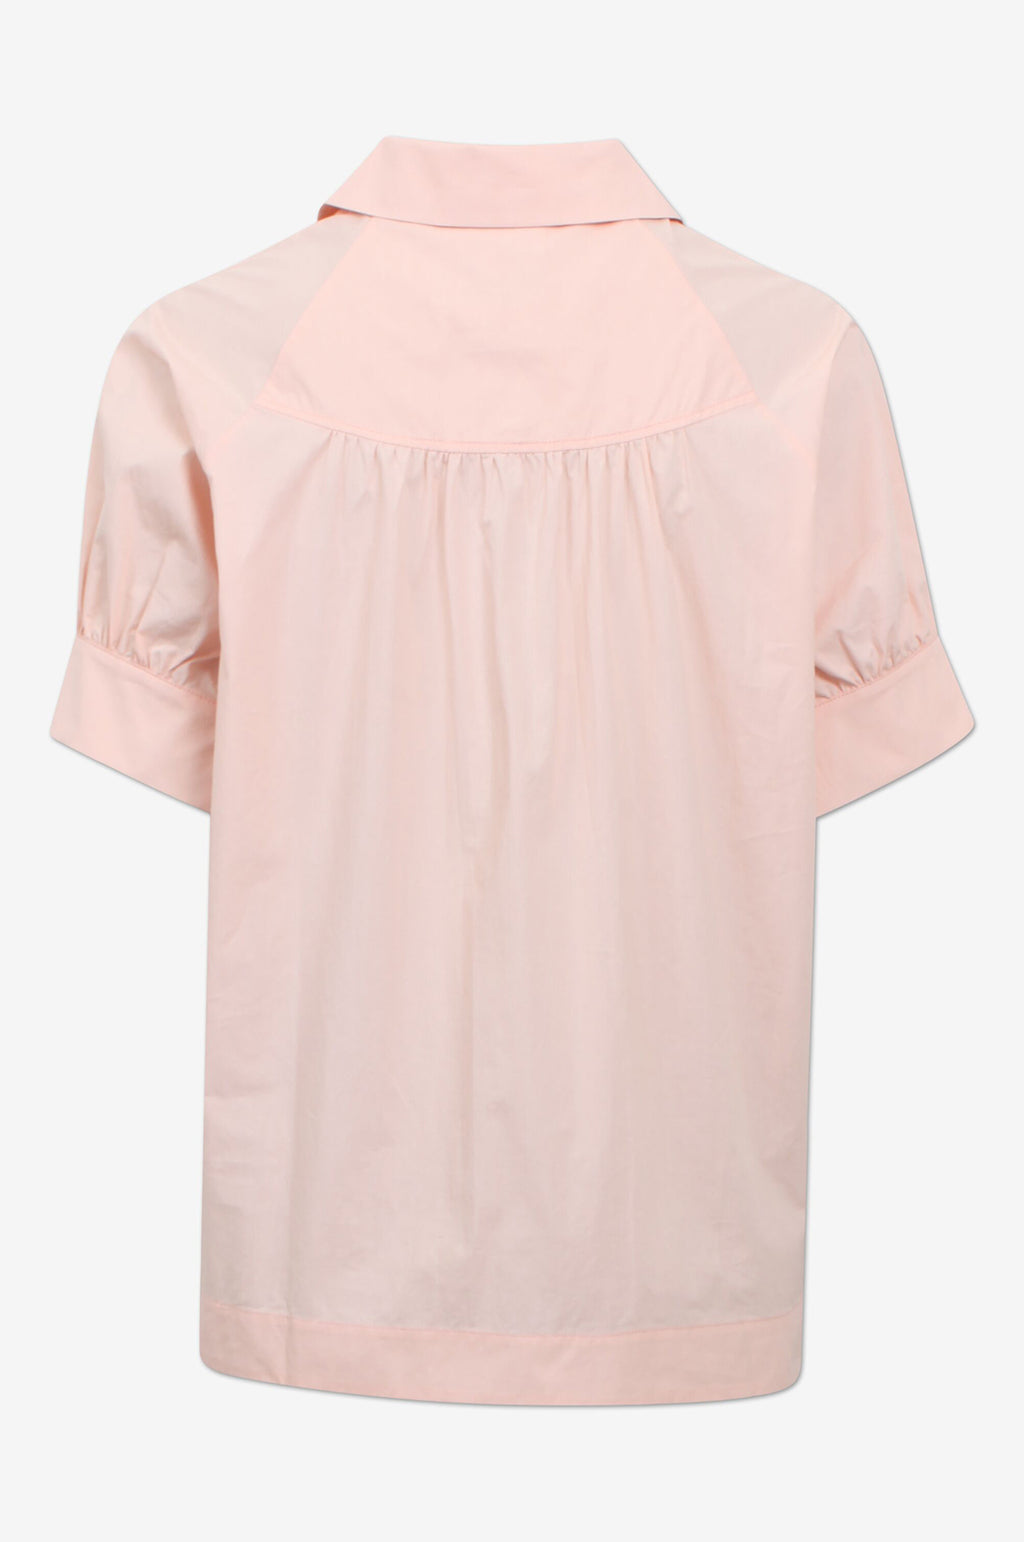 Moana Top in Cameo Rose